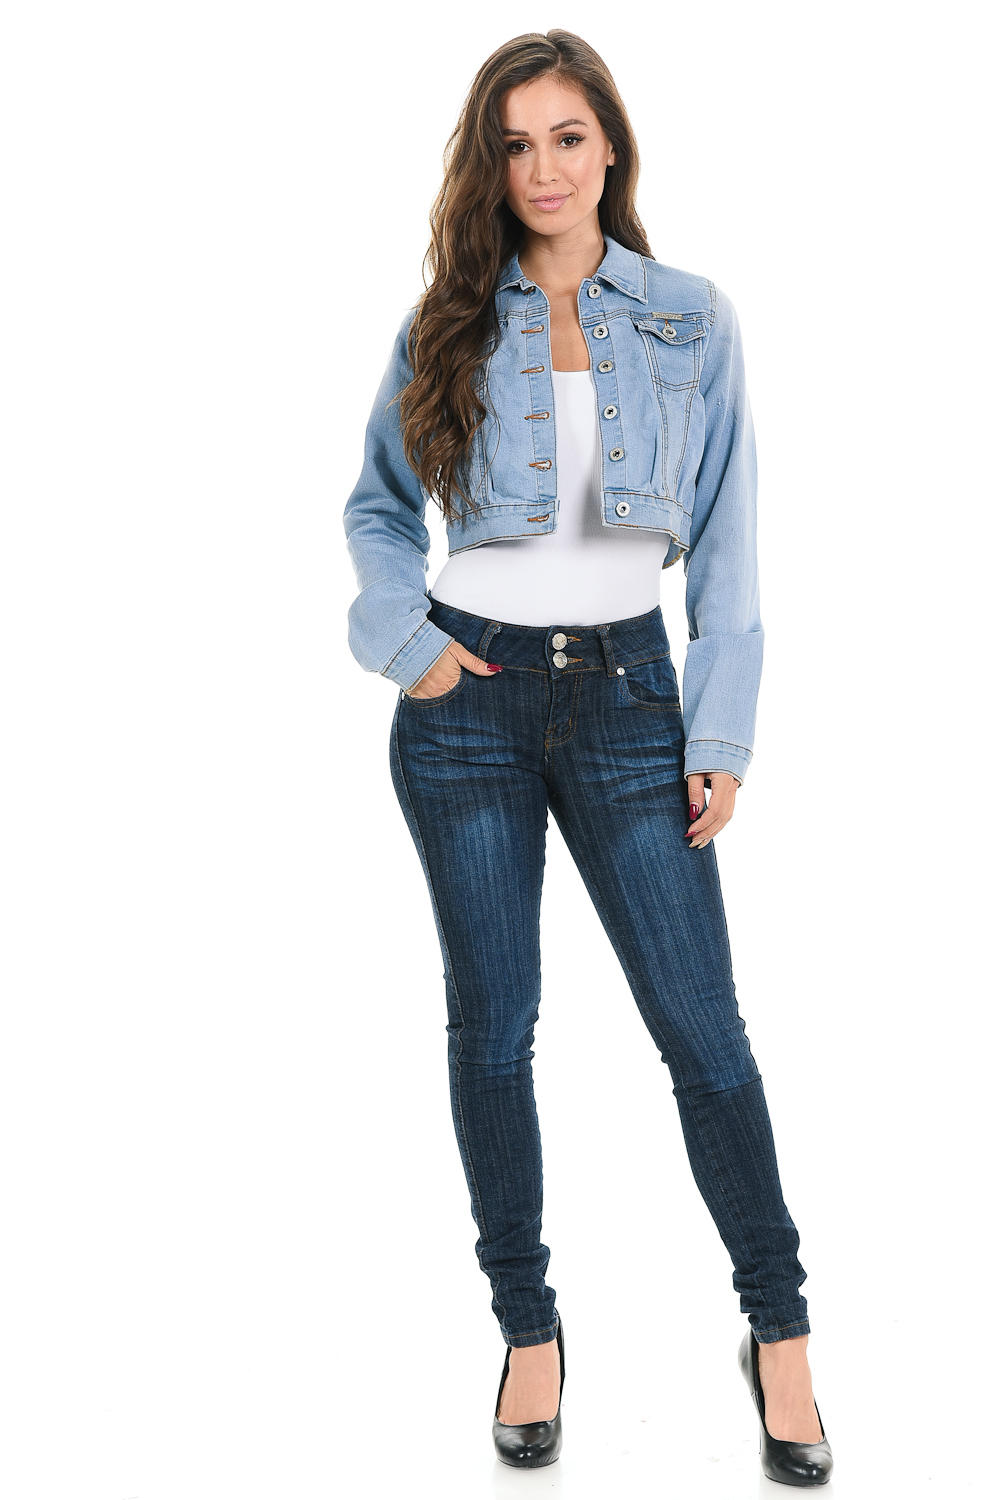 Sweet Look Women's Denim Jacket - Style 292